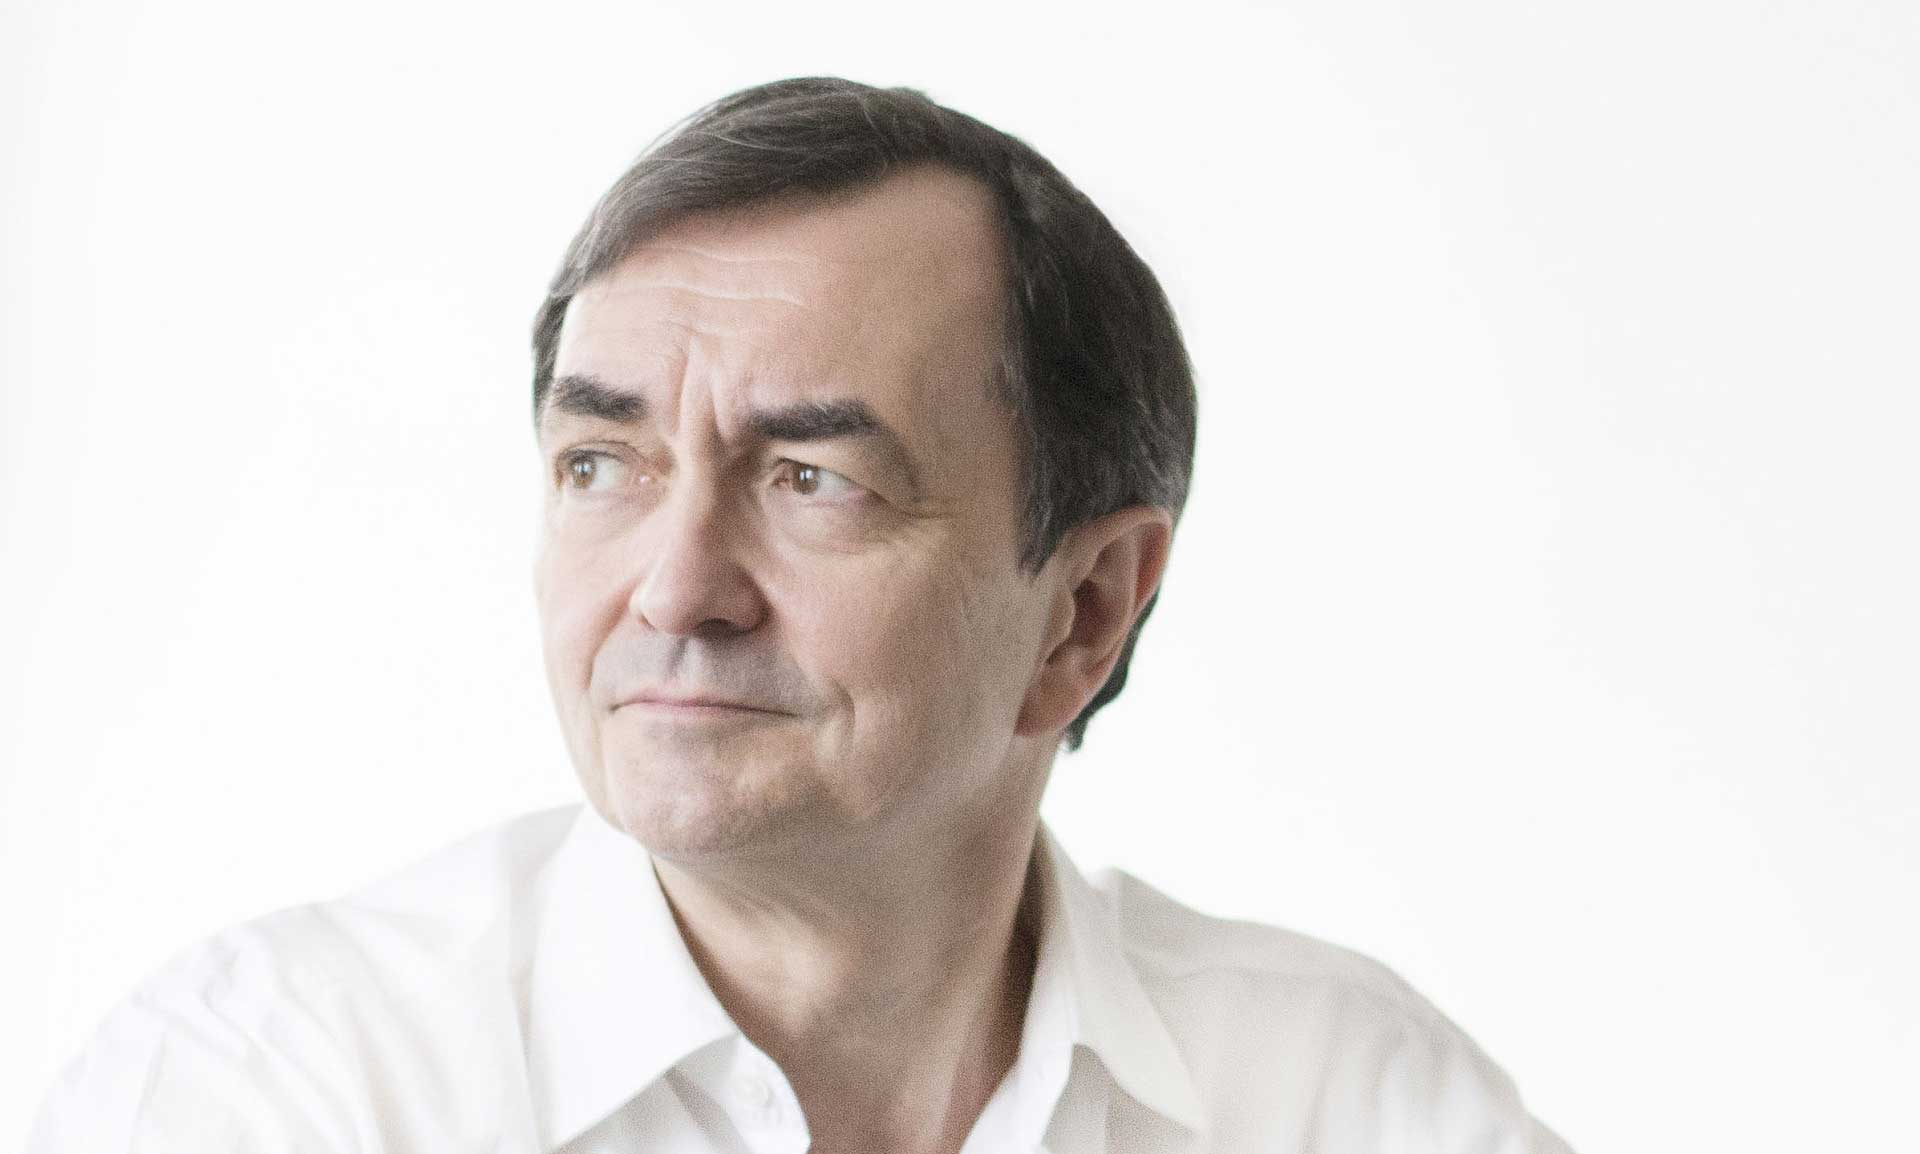 Pierre-Laurent Aimard